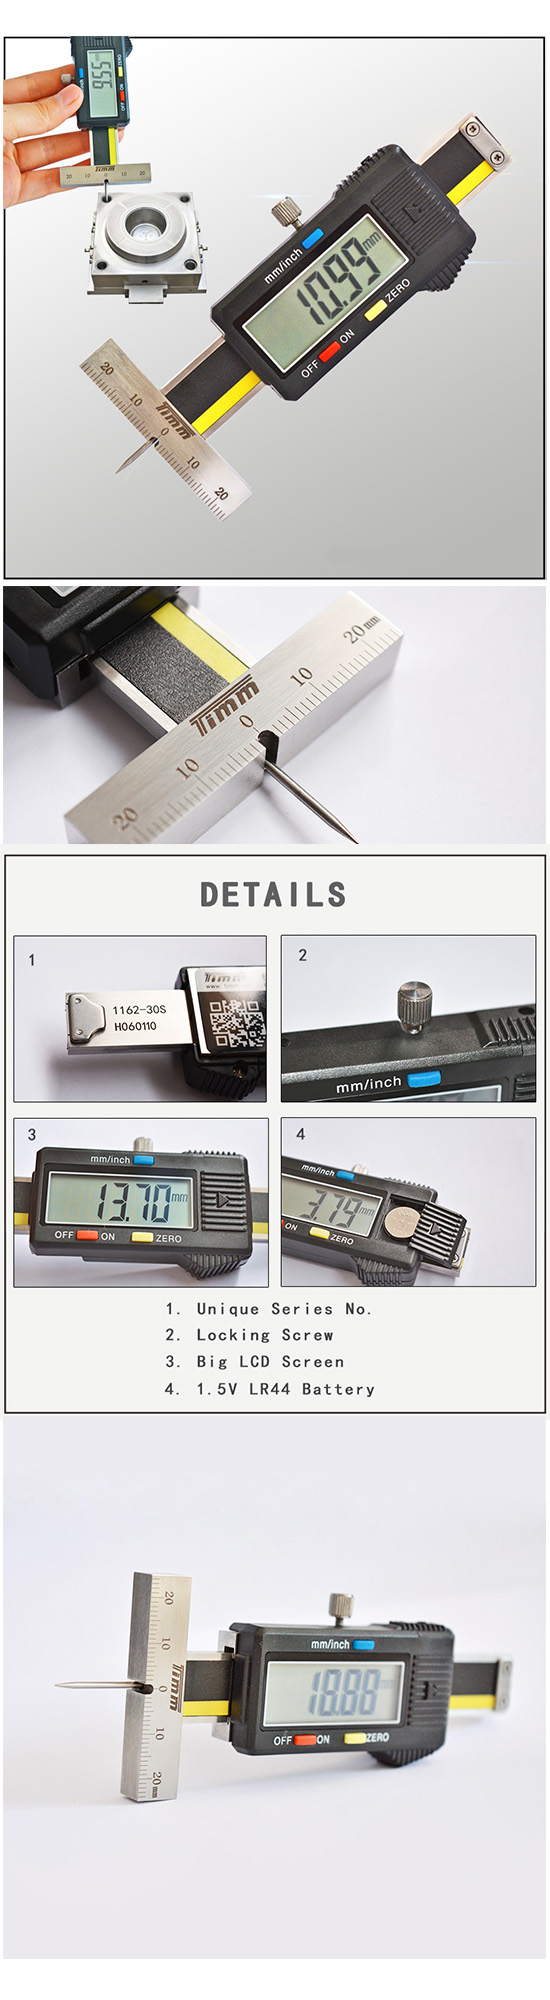 Mini Thin Rod digital depth caliper to measure small holes Digital Tire Tread depth gauge